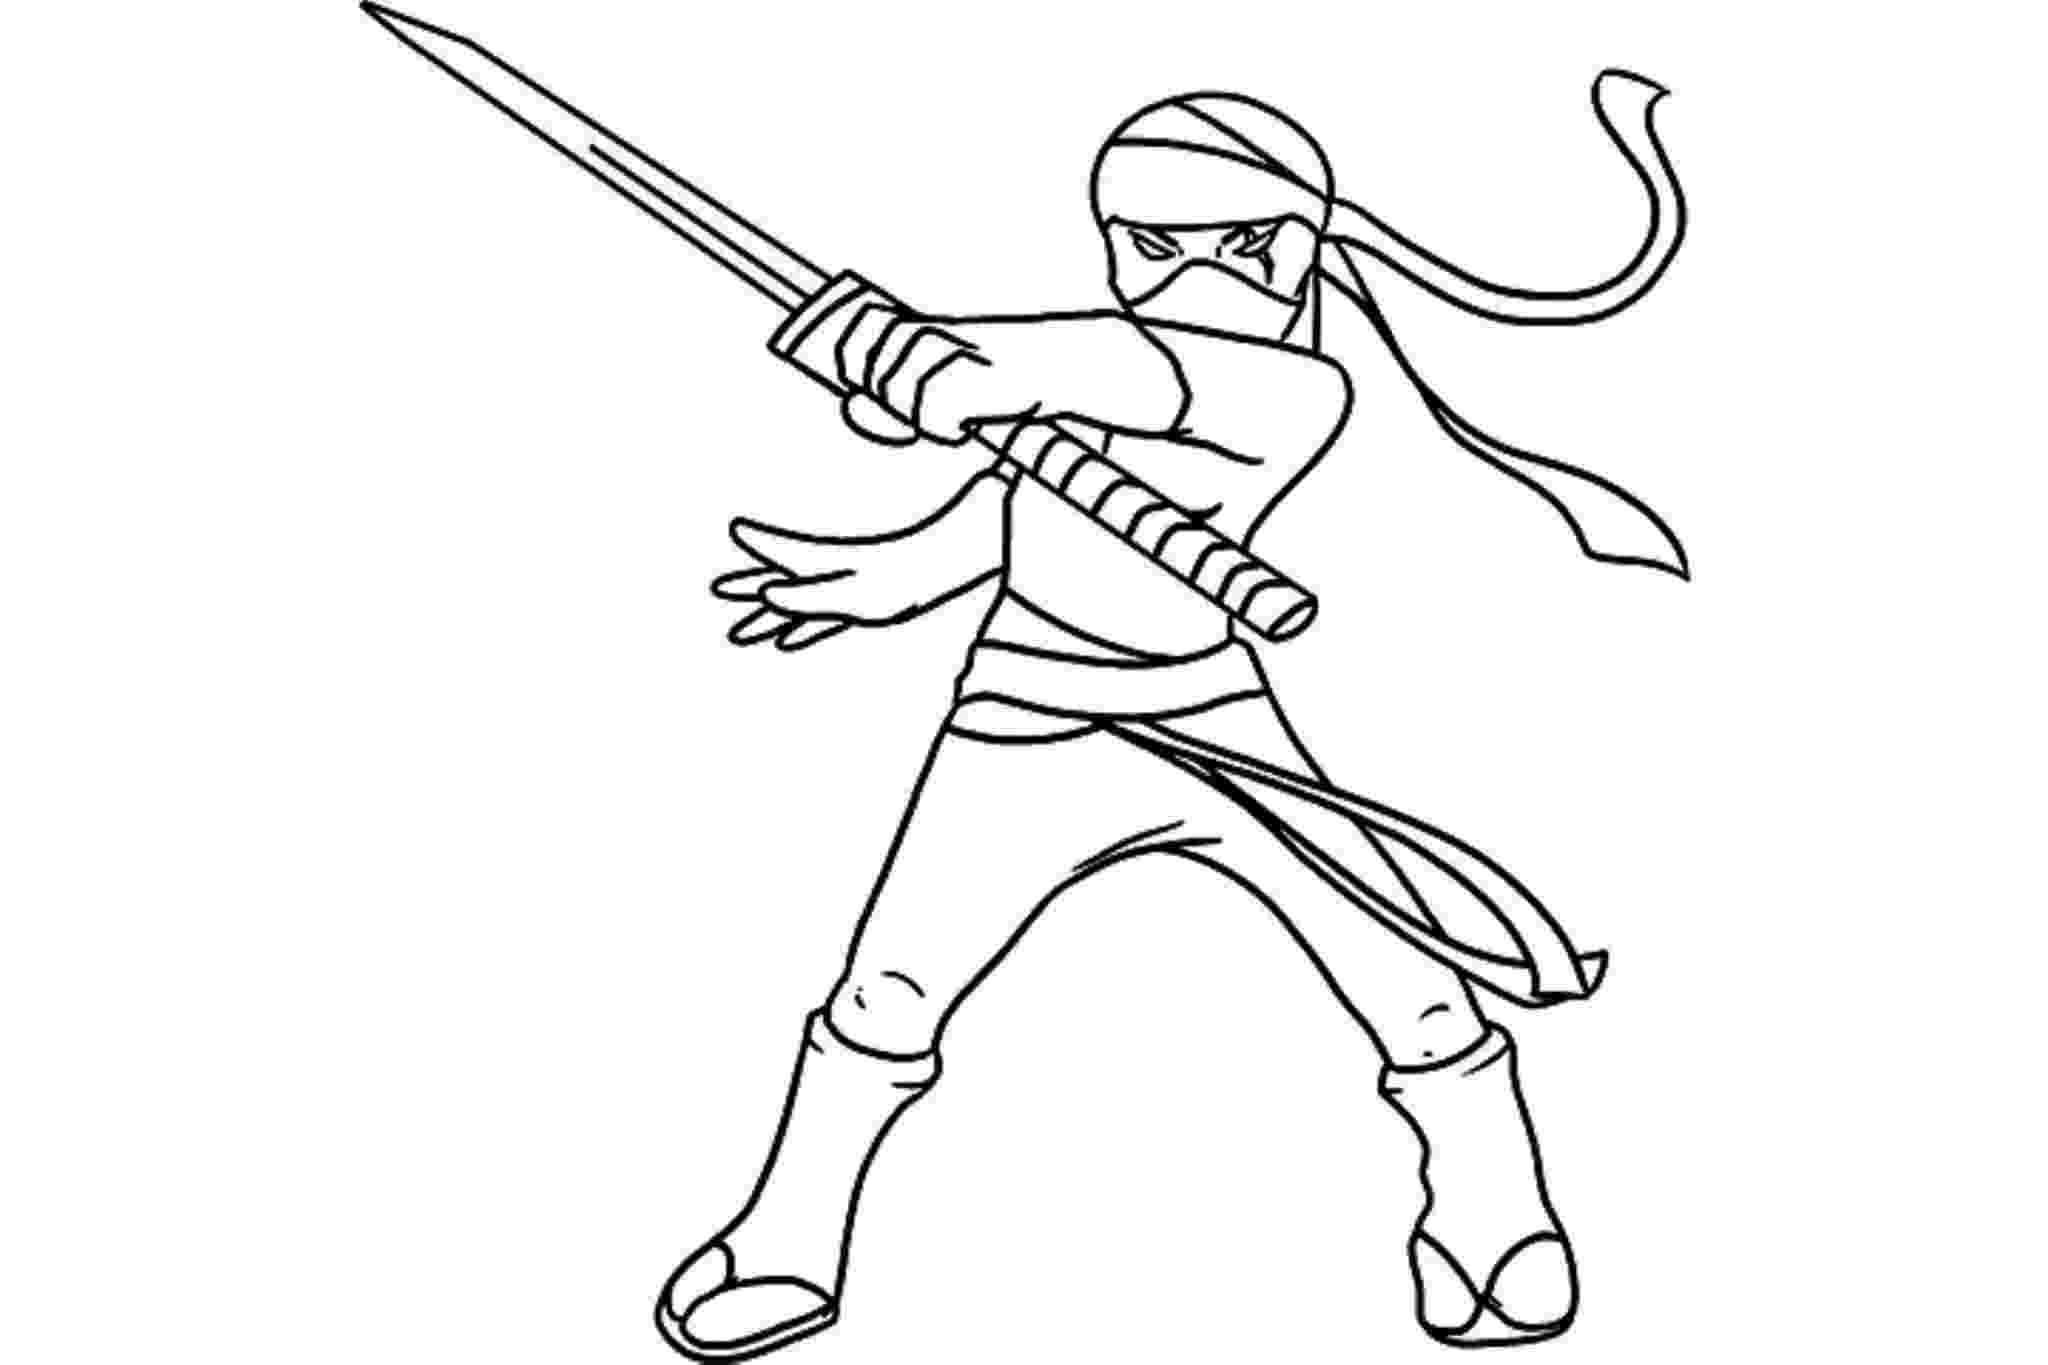 ninja coloring pages ninja coloring pages to download and print for free pages ninja coloring